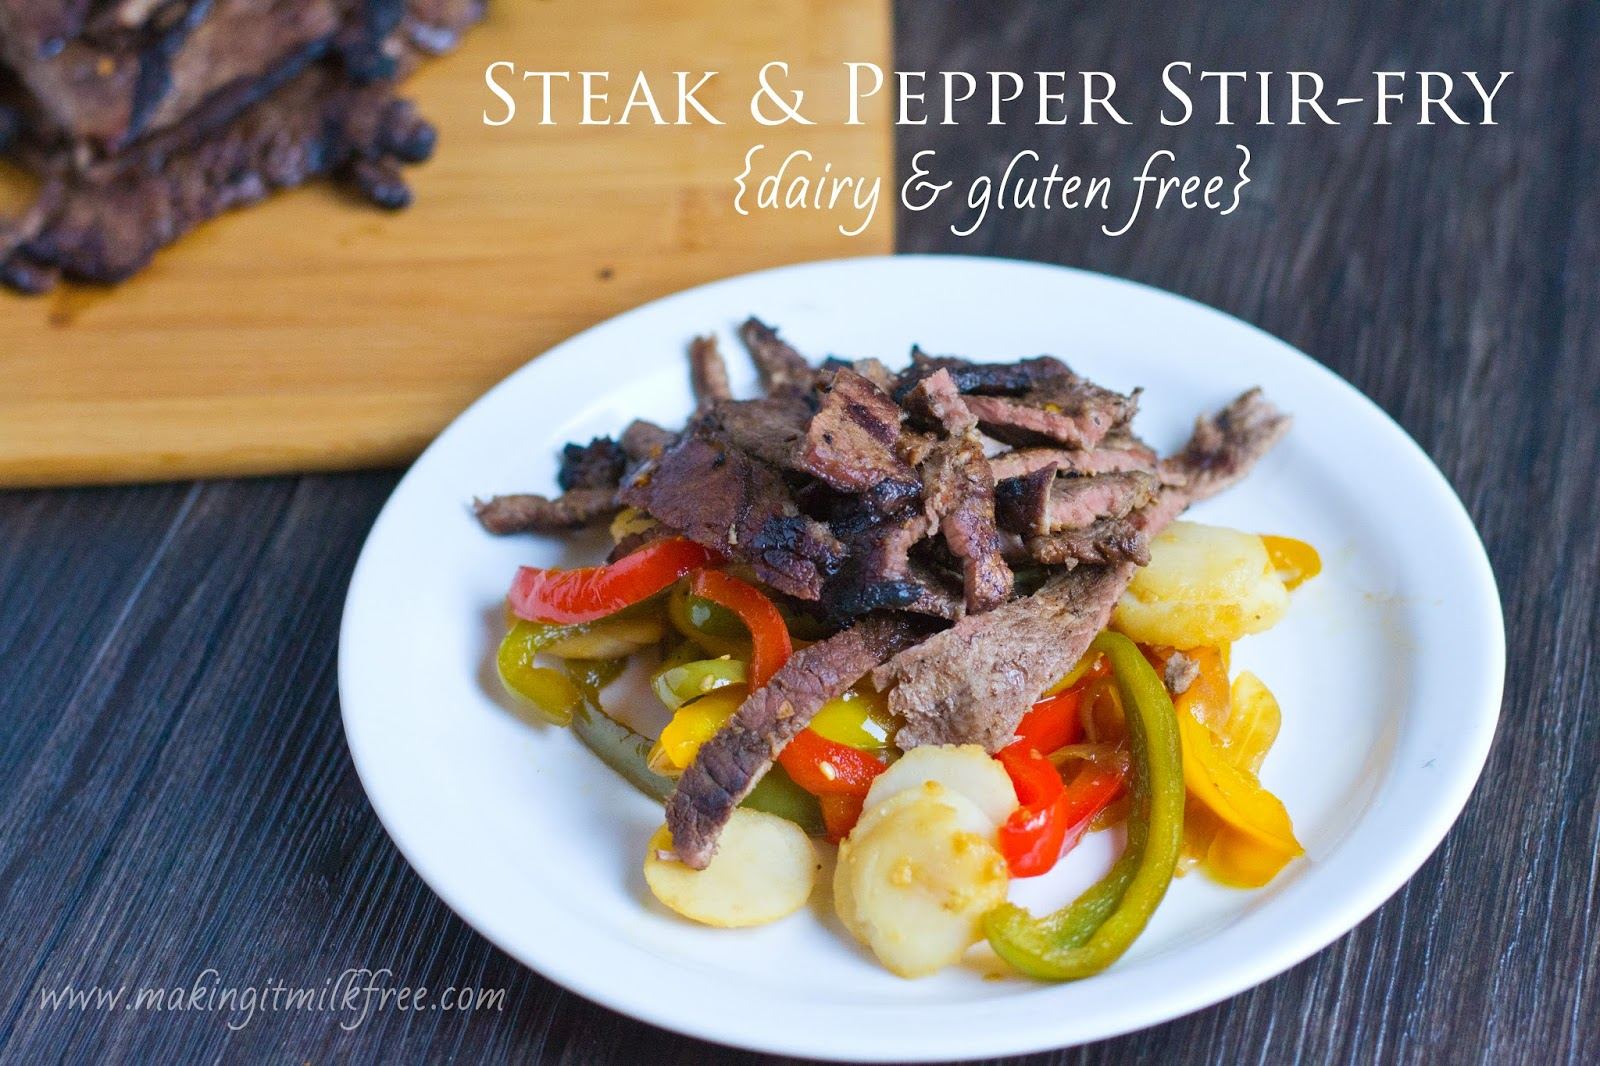 #glutenfree #dairyfree #steak #grilling #recipes